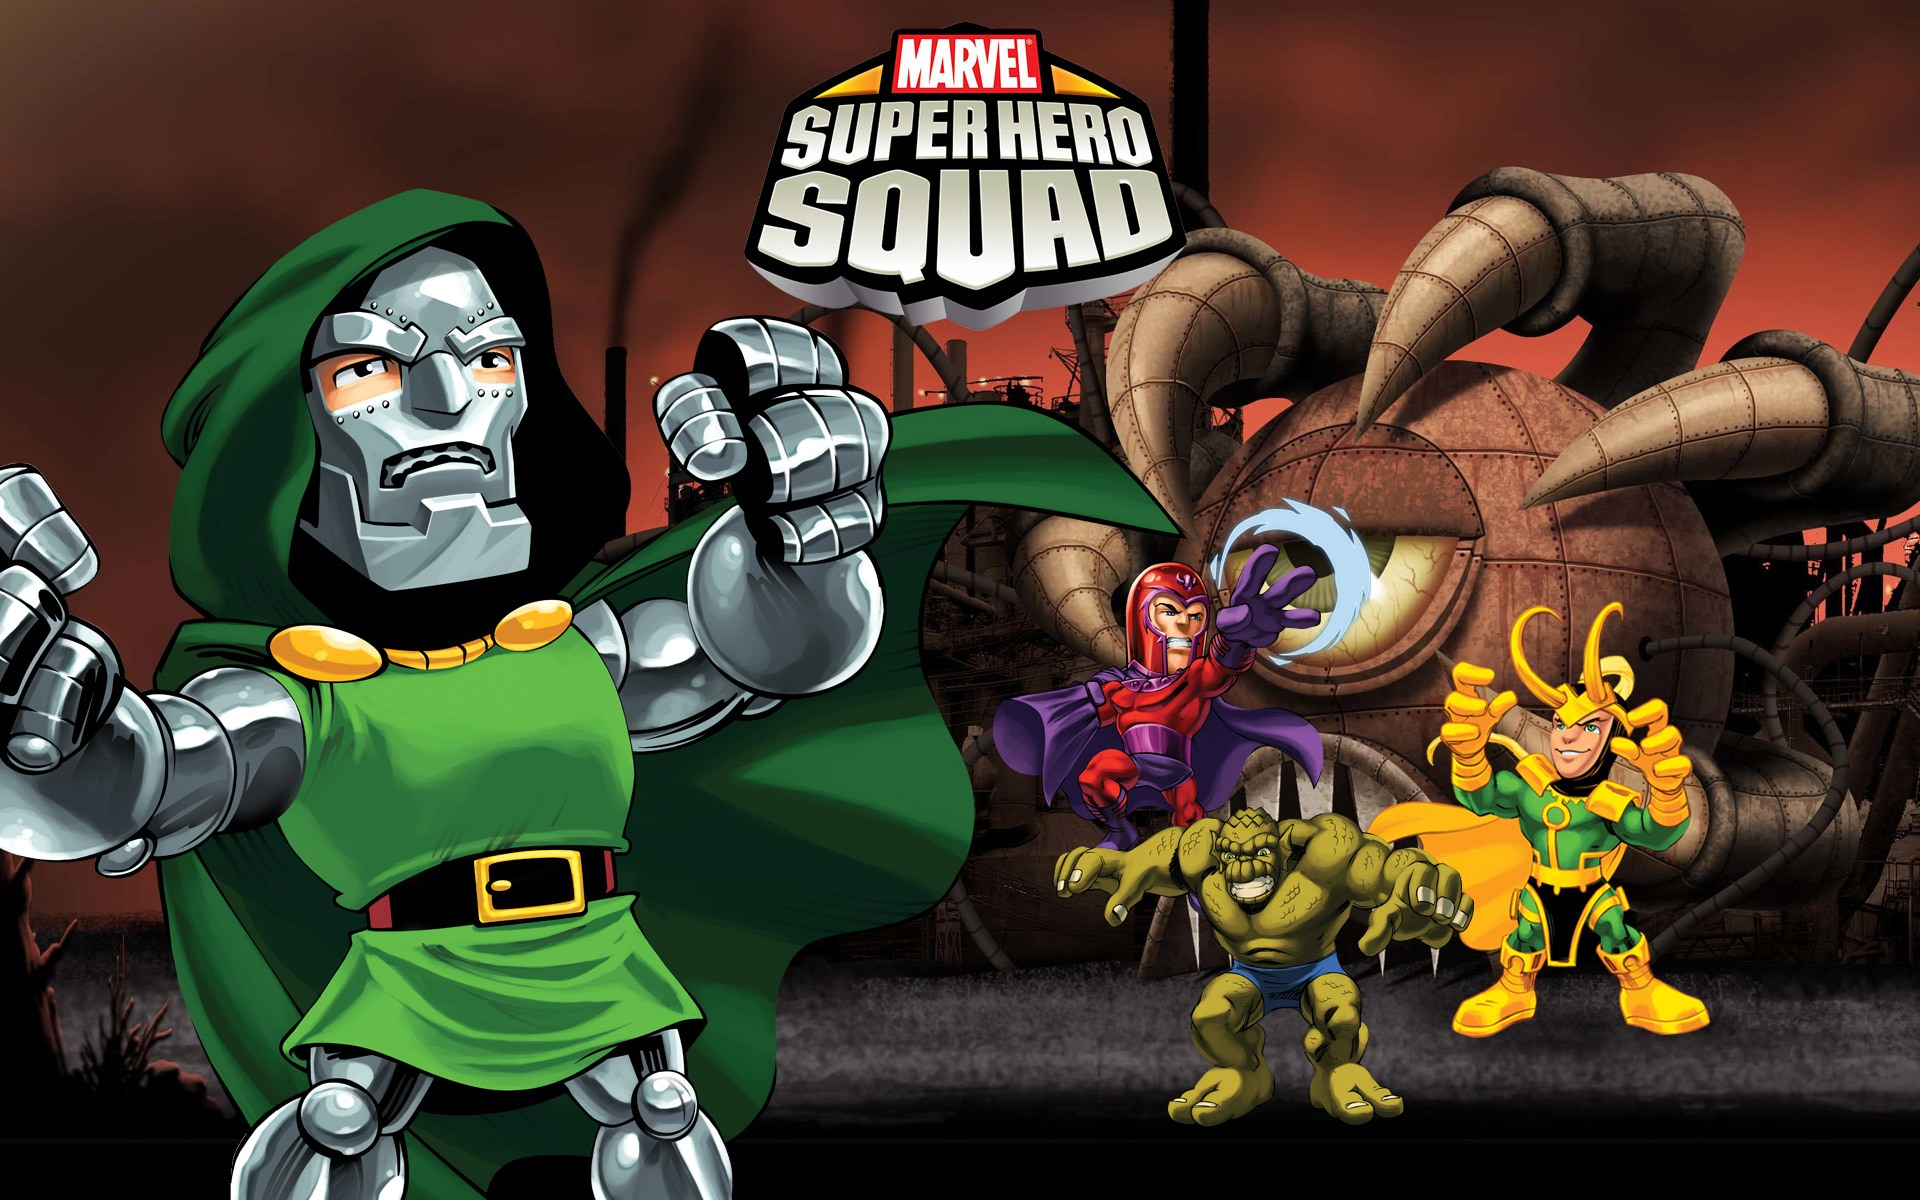 Wallpaper Calendar Superhero : Marvel superhero squad wallpapers